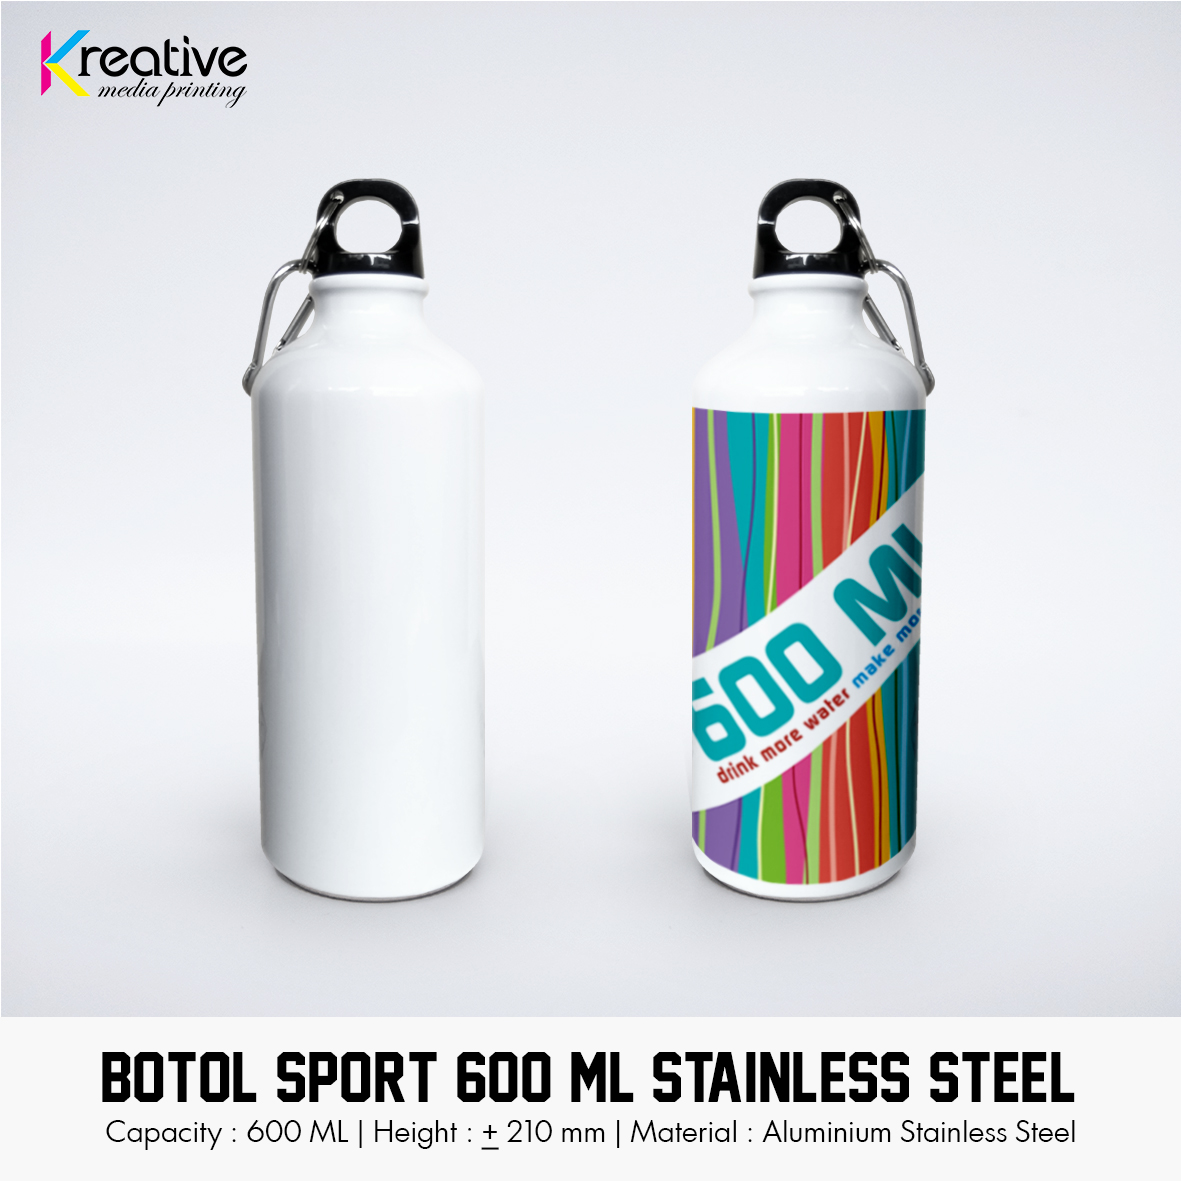 Botol Sport 600 ML Stainless Steel